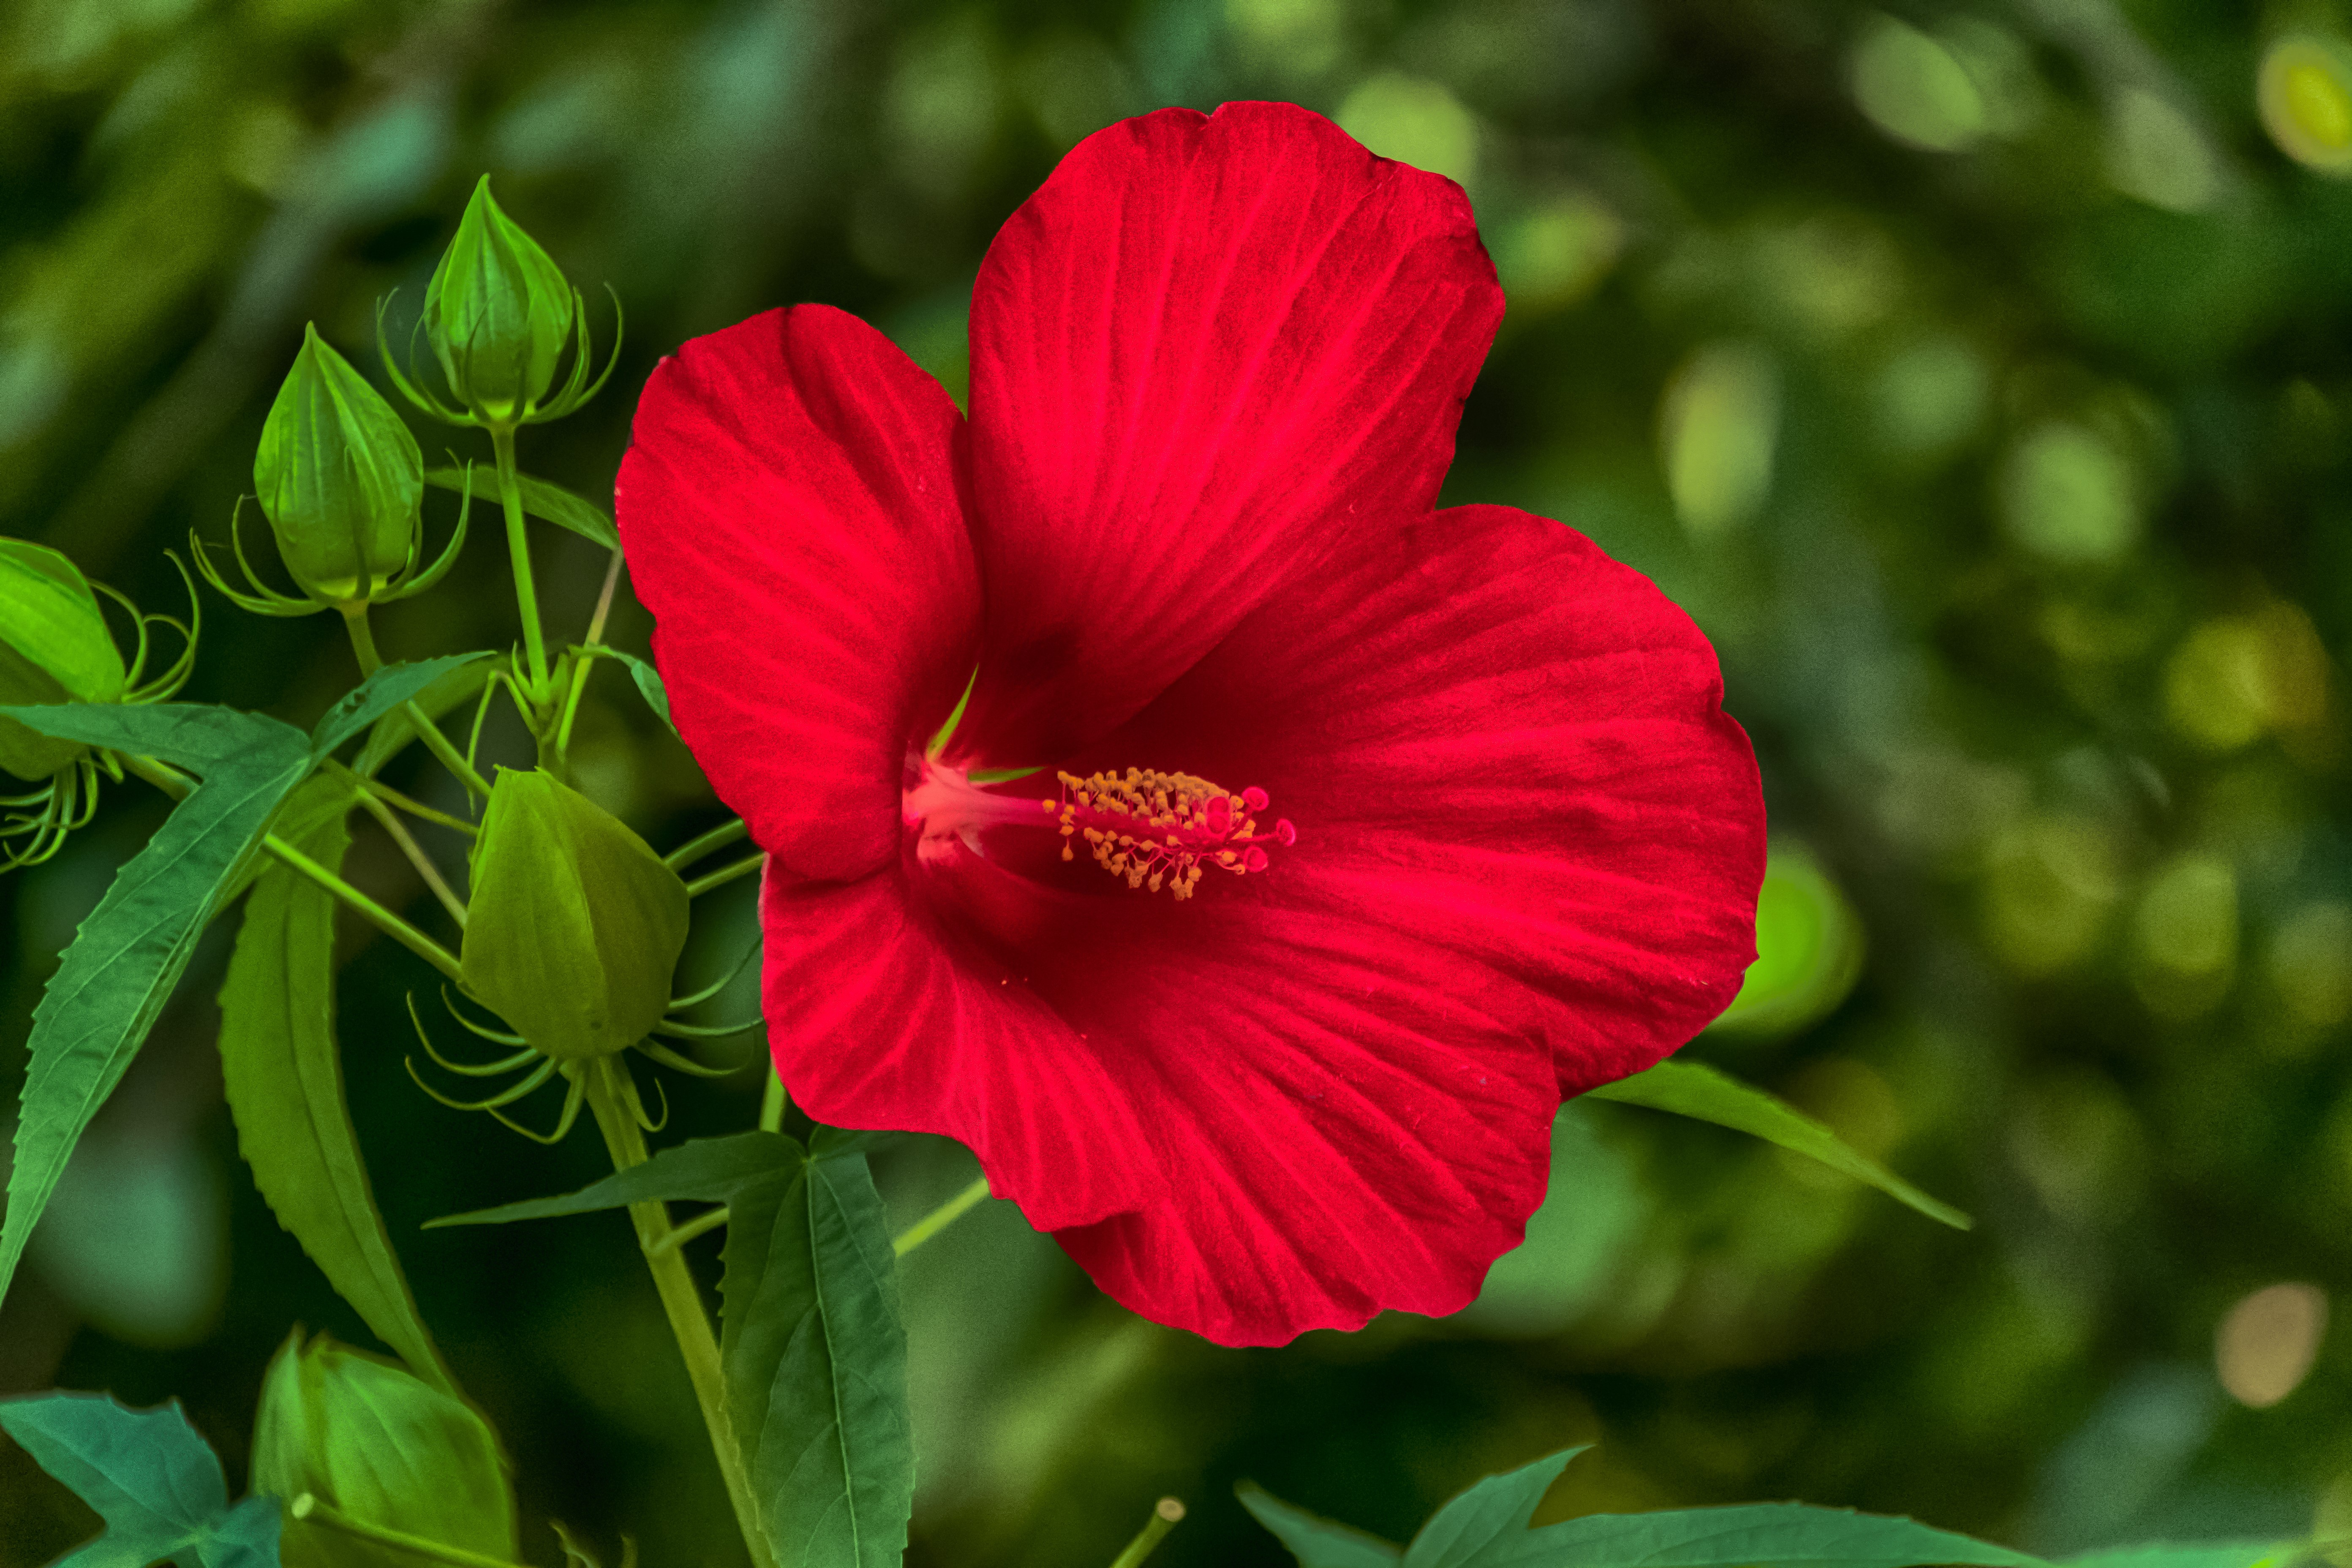 red hibiscus 5k retina ultra hd wallpaper and background image